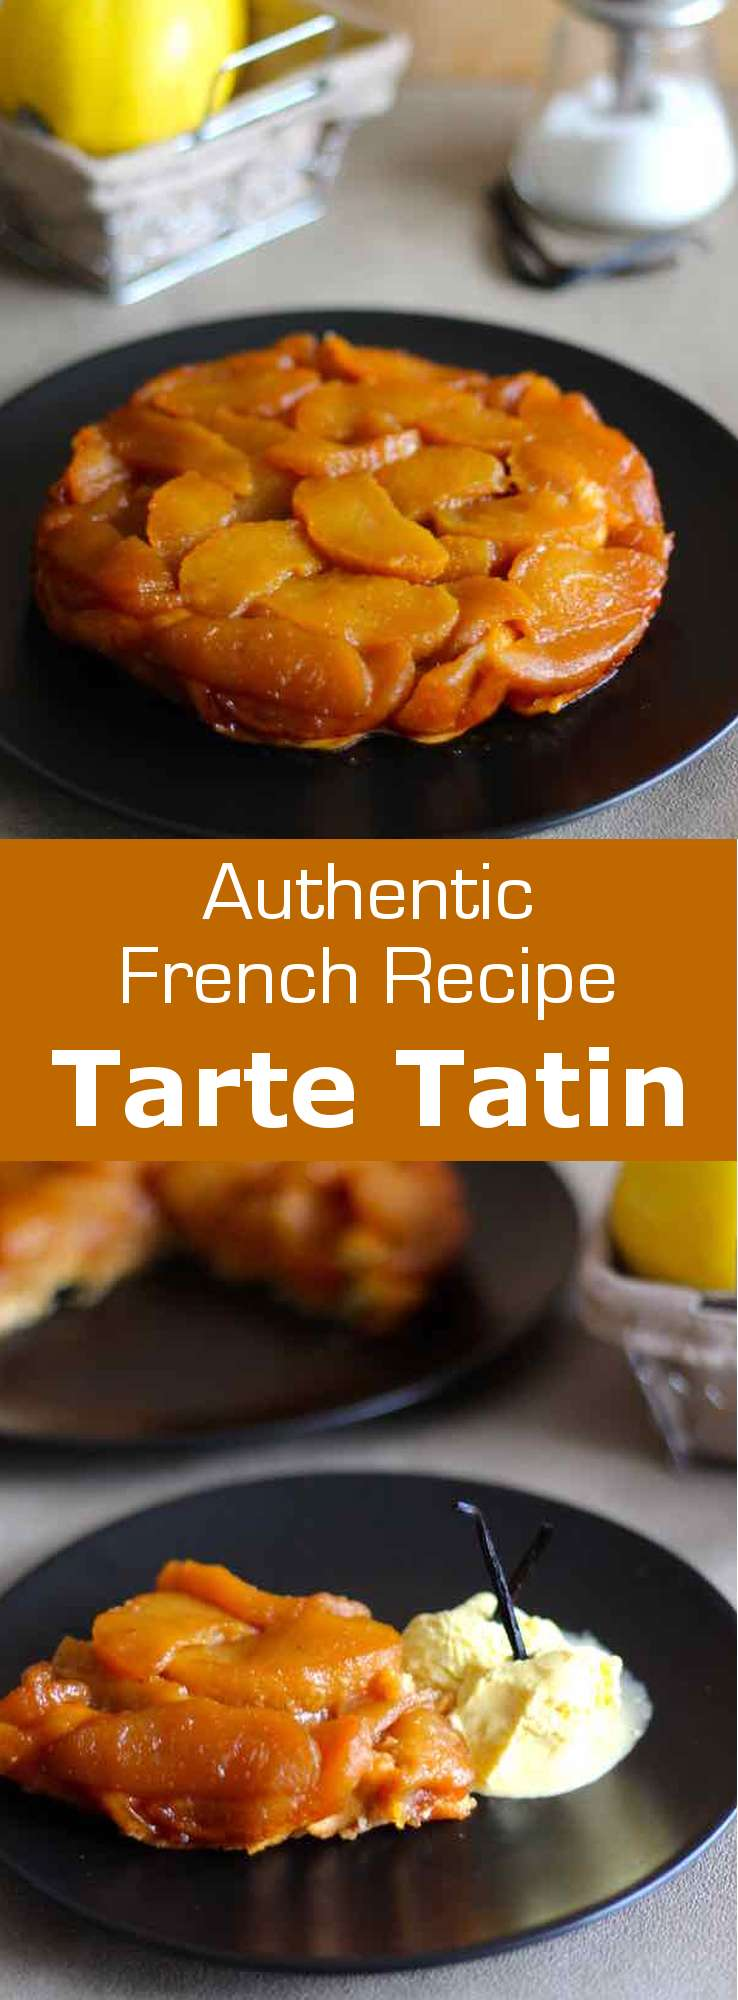 Tarte Tatin is an upside-down apple tart made by coating the bottom of a shallow baking dish with butter and sugar, then apples and finally a pastry crust. #French #196flavors